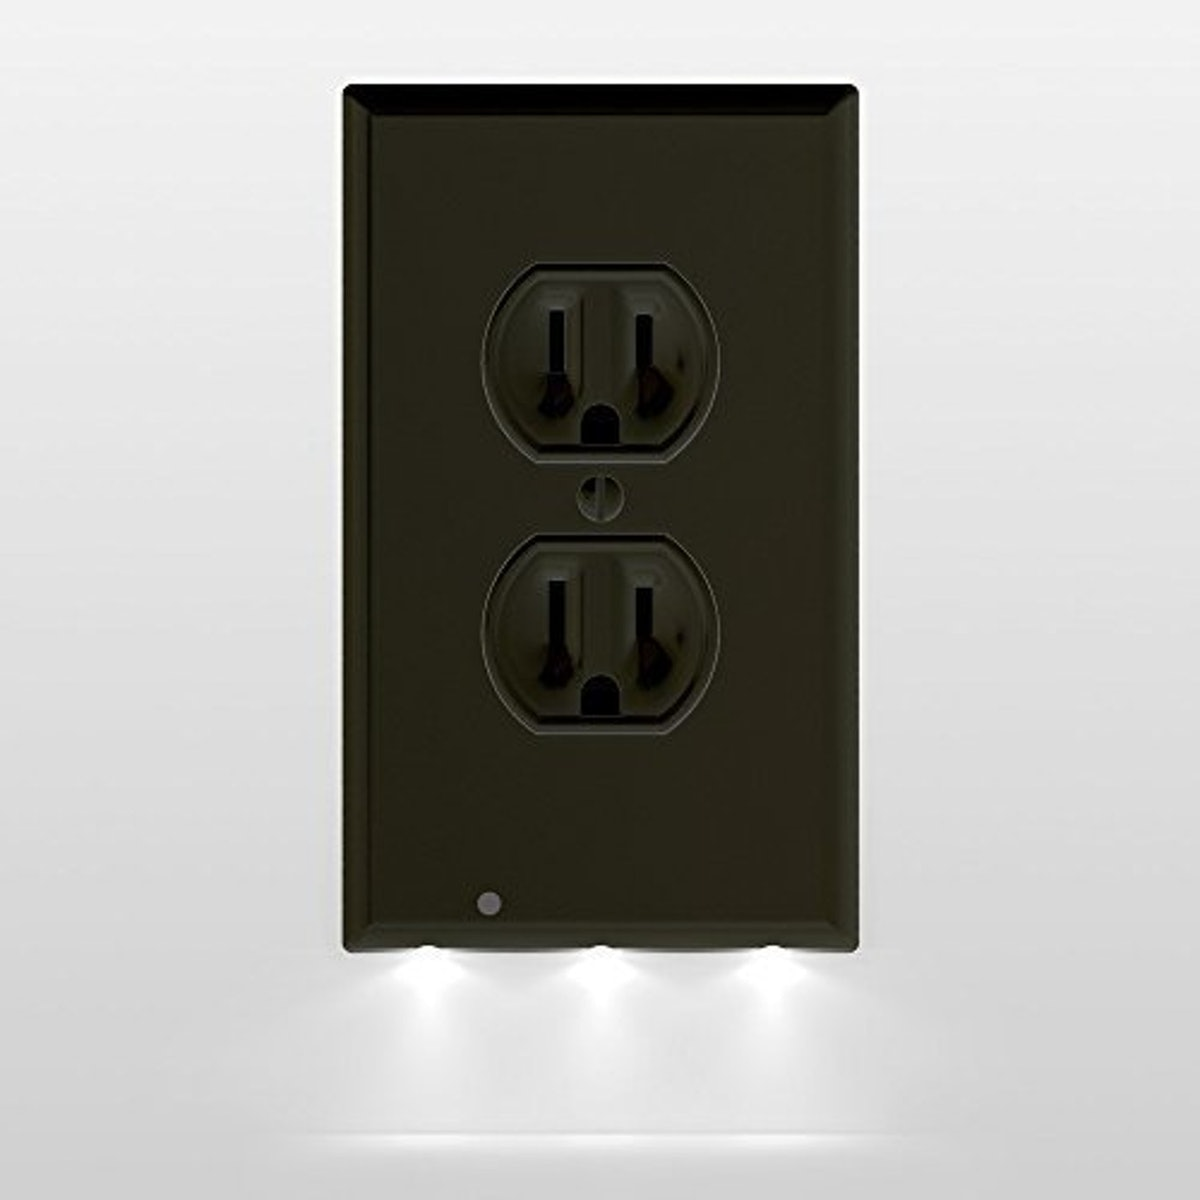 SnapPower Guidelight Wall Plate